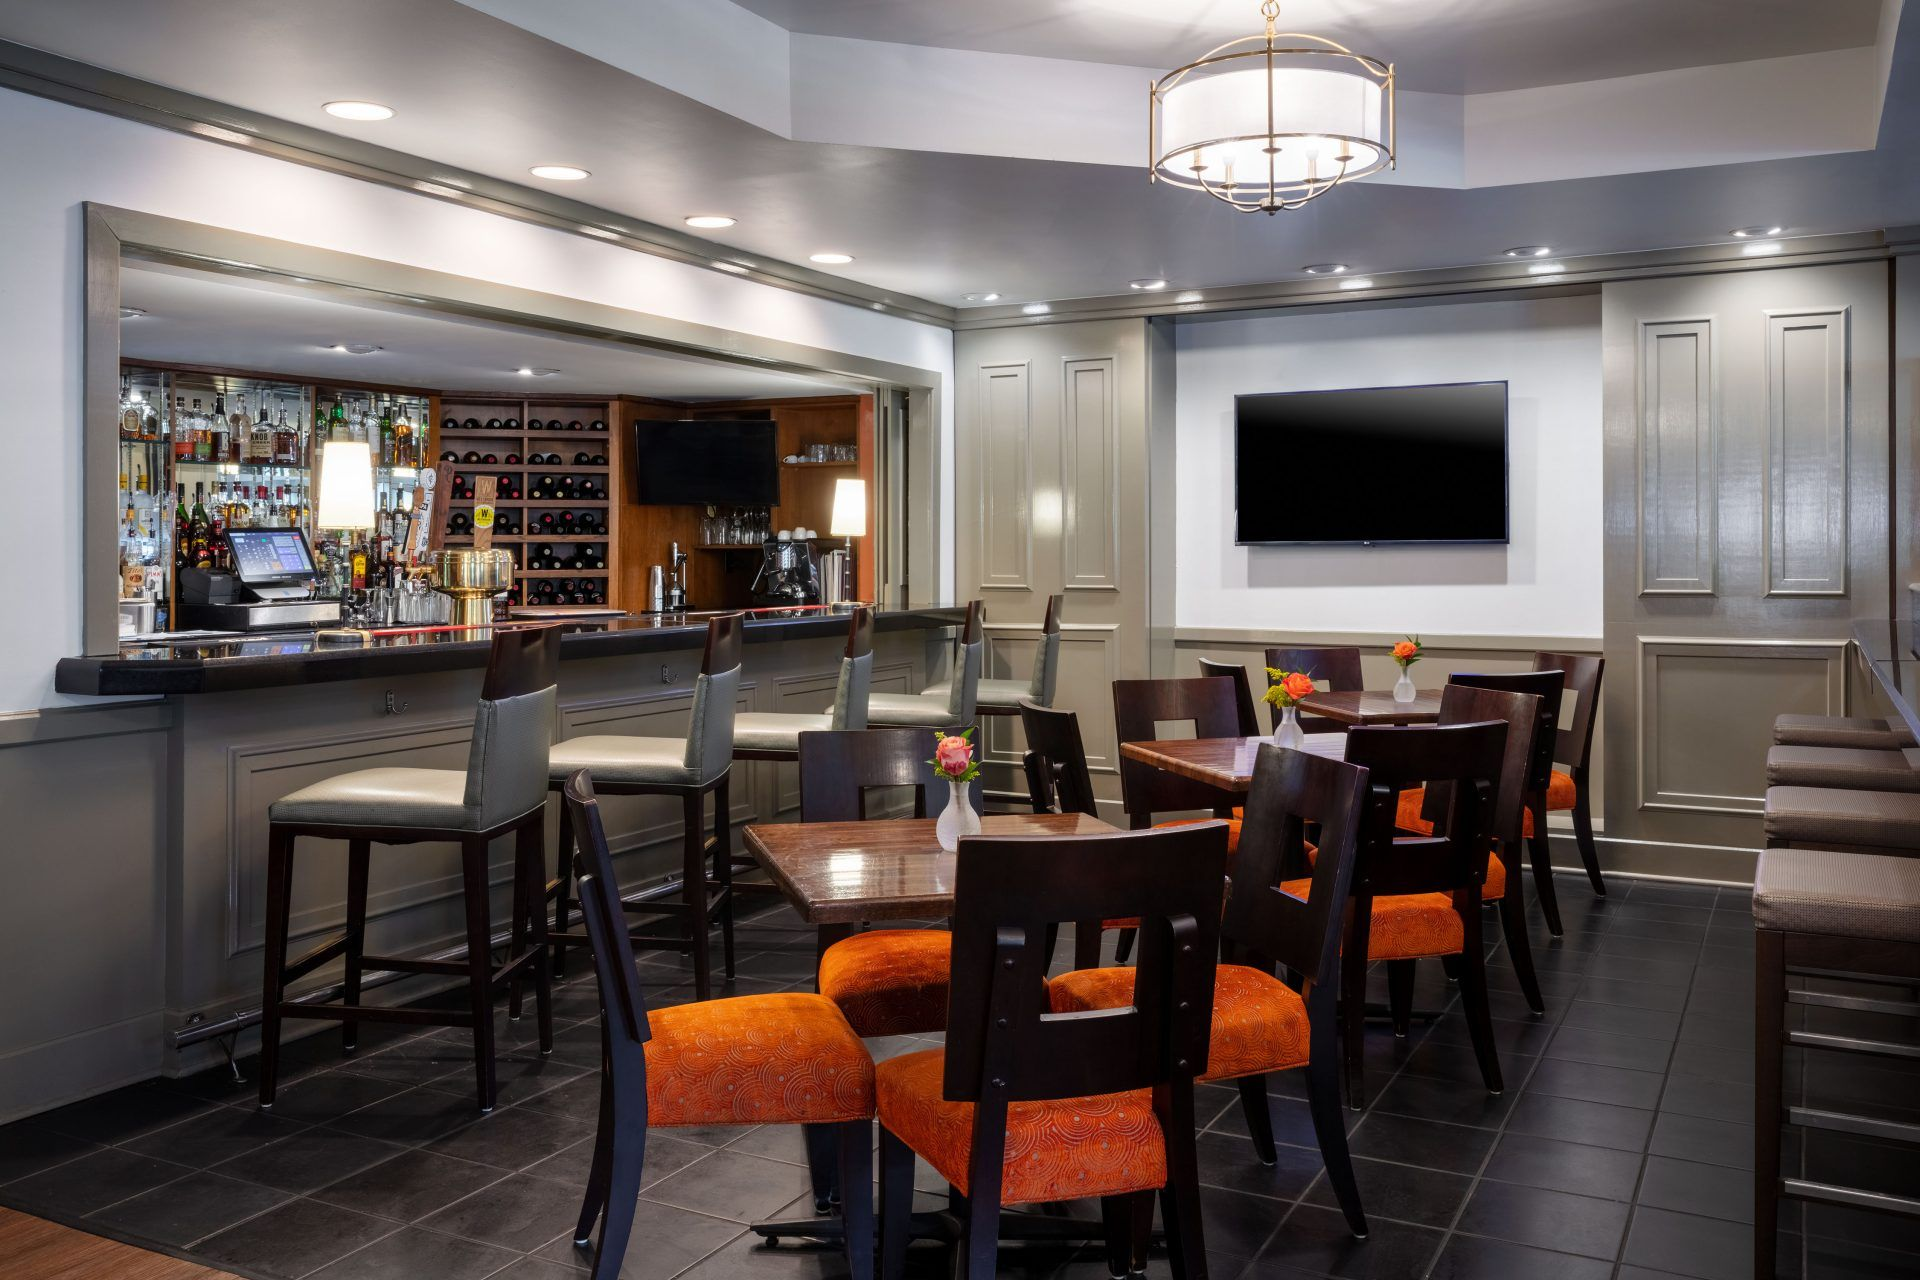 The bar area of the swamp fox restaurant has five bar seats and three tables with four chairs around them. A tv hangs on the wall.